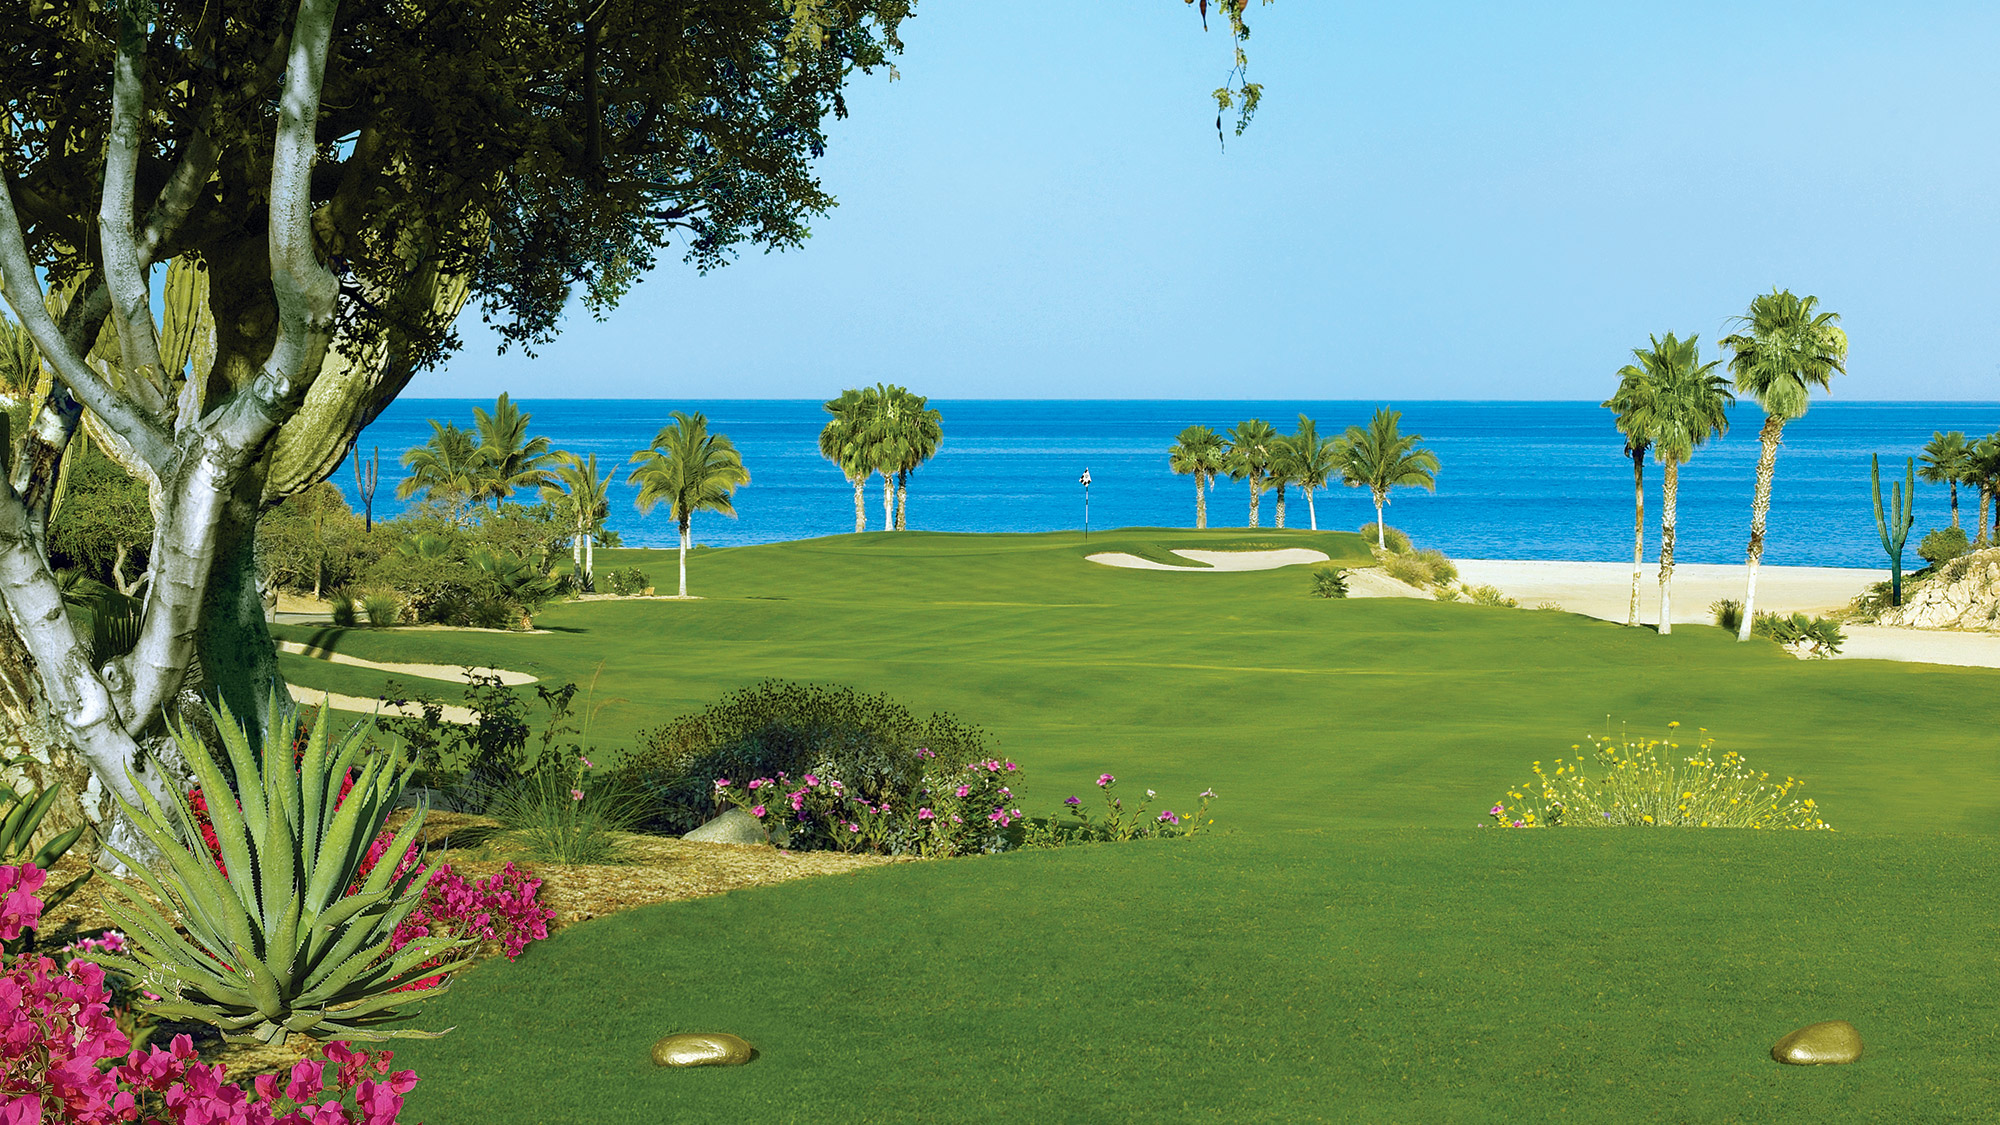 A view of the green on One&Only Palmilla's Jack Nicklaus-designed Ocean course.